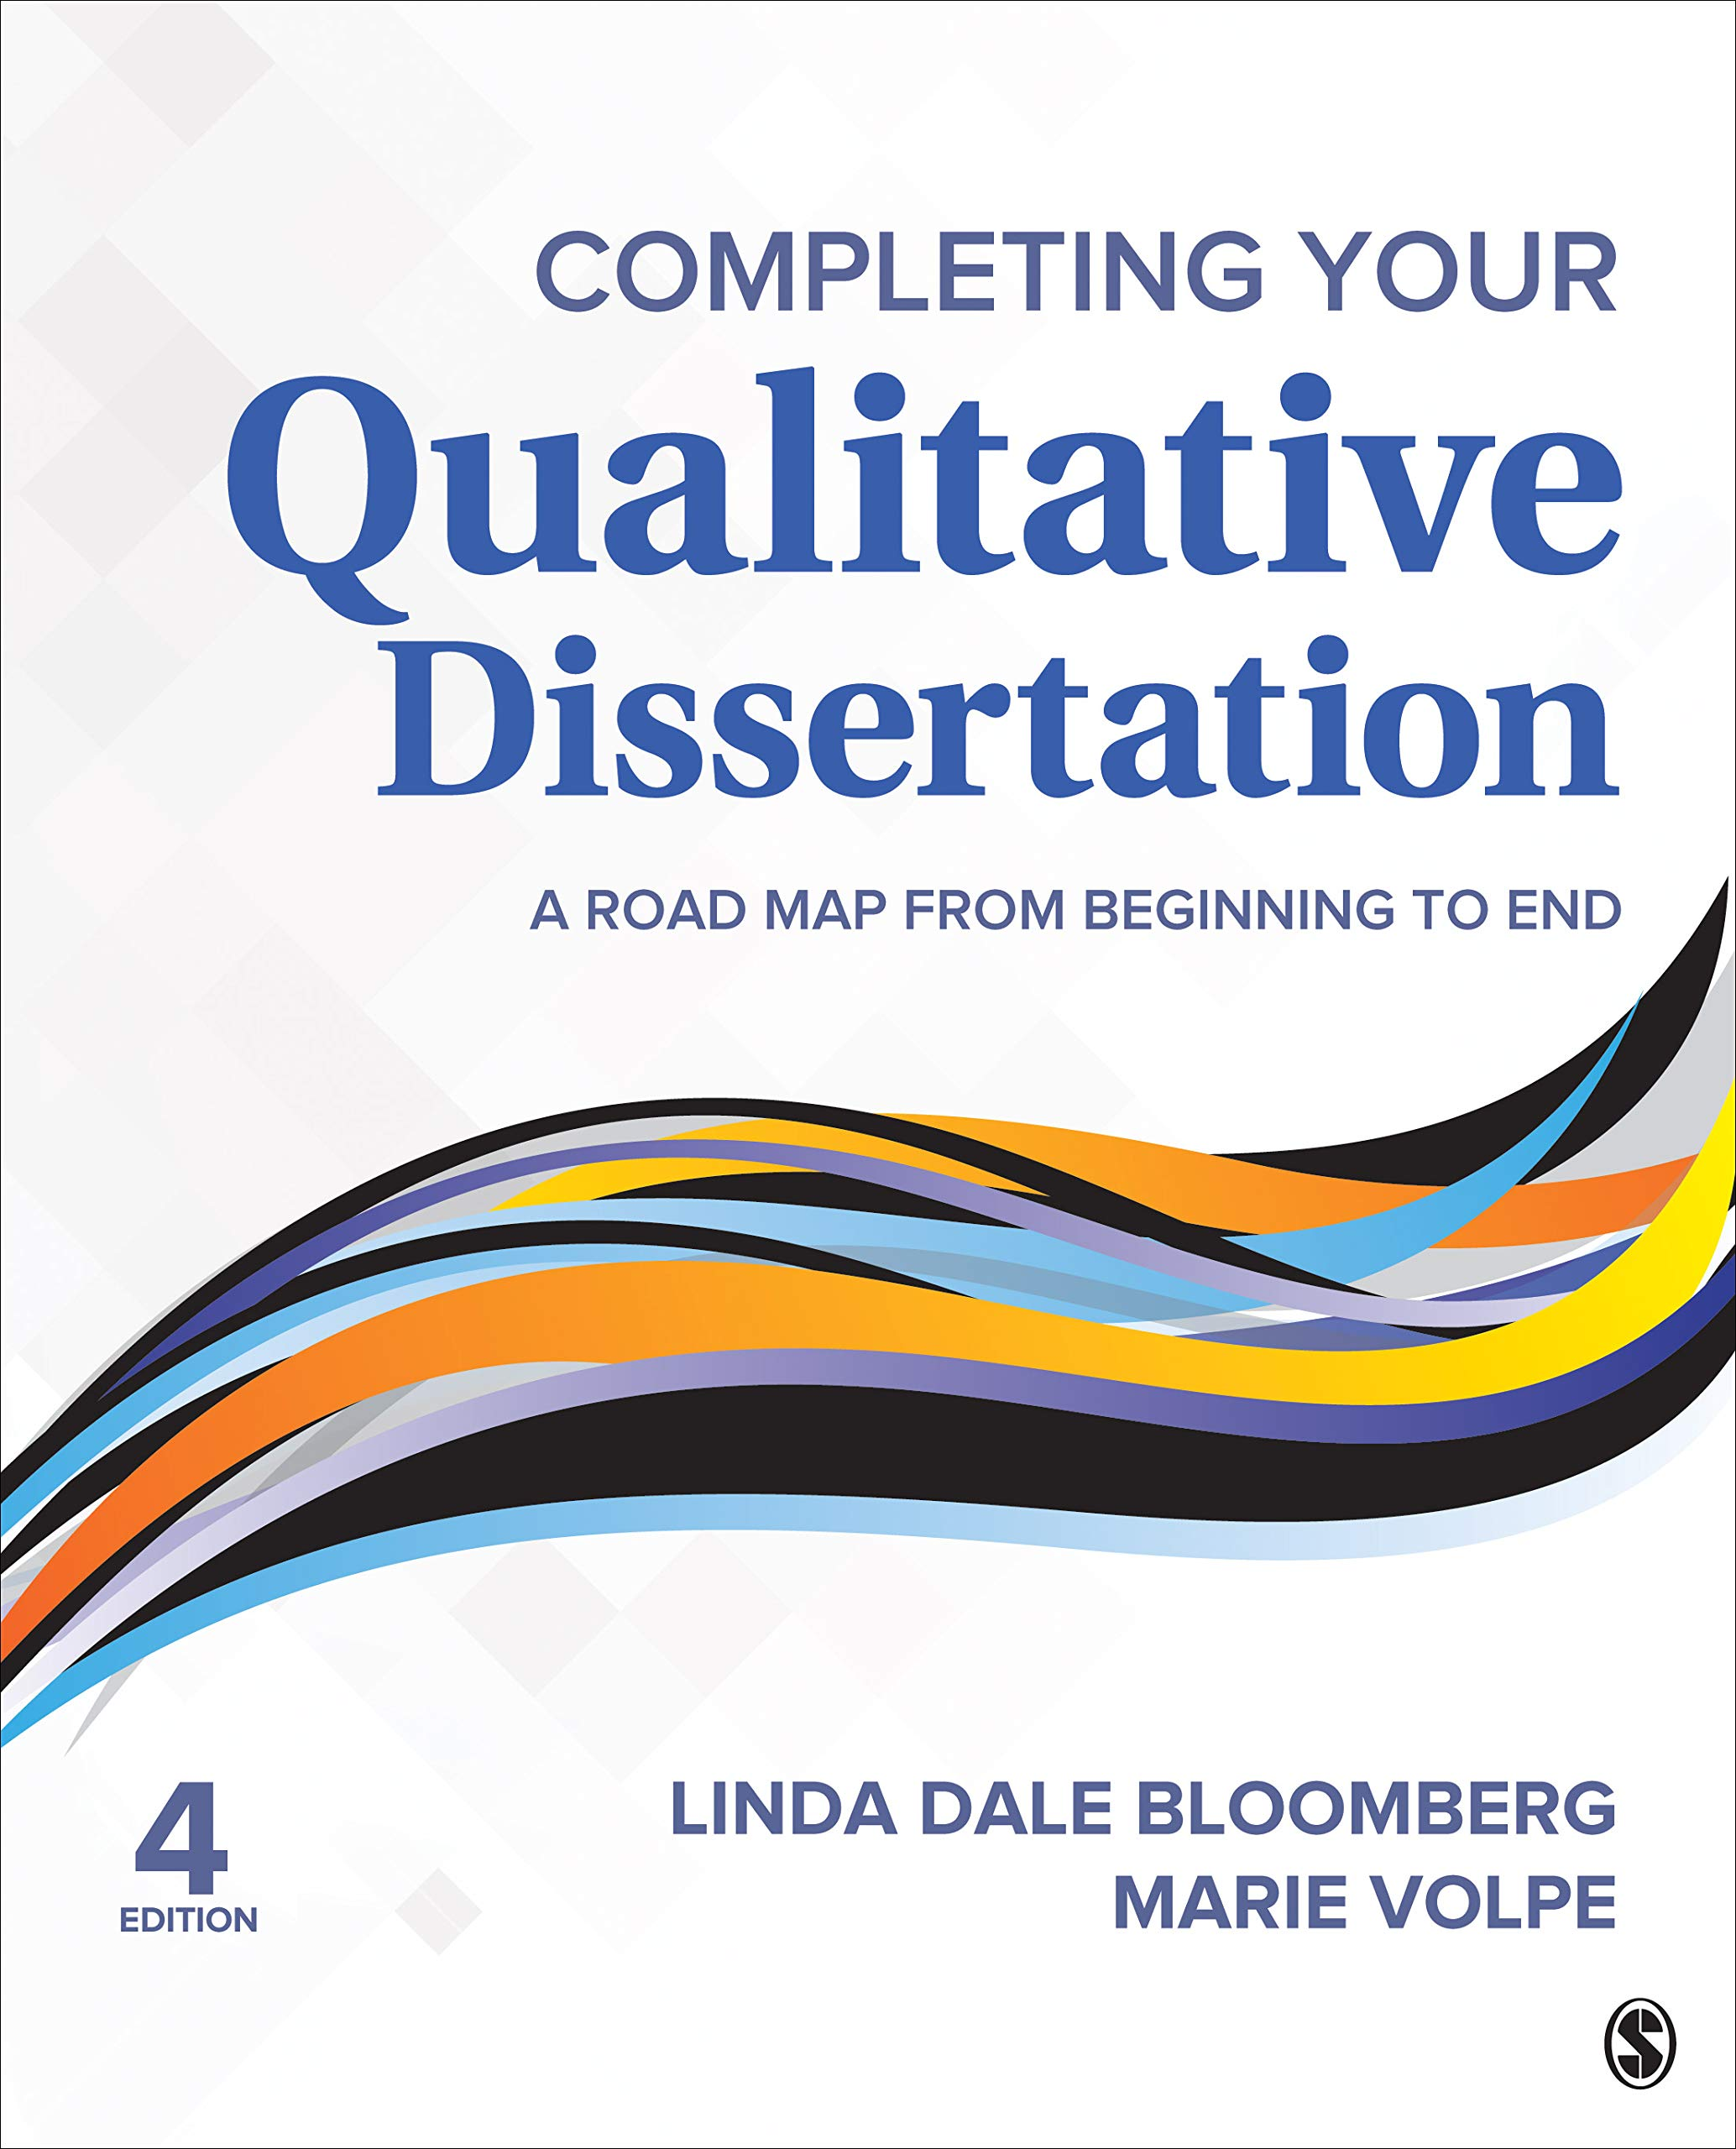 Completing Your Qualitative Dissertation: A Road Map From Beginning to End by SAGE Publications, Inc